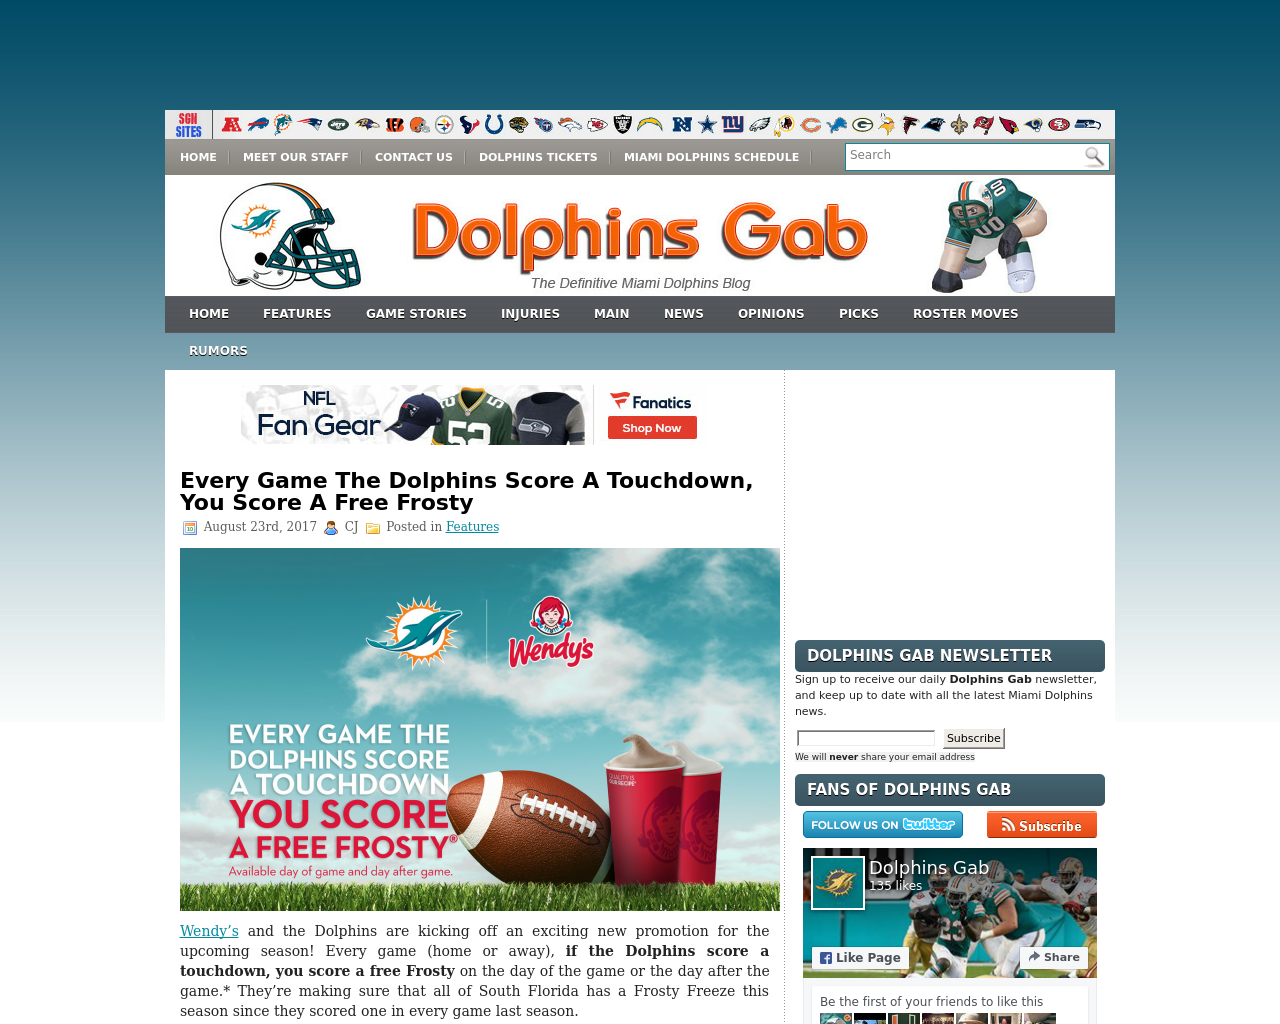 Dolphins-Gab-Advertising-Reviews-Pricing